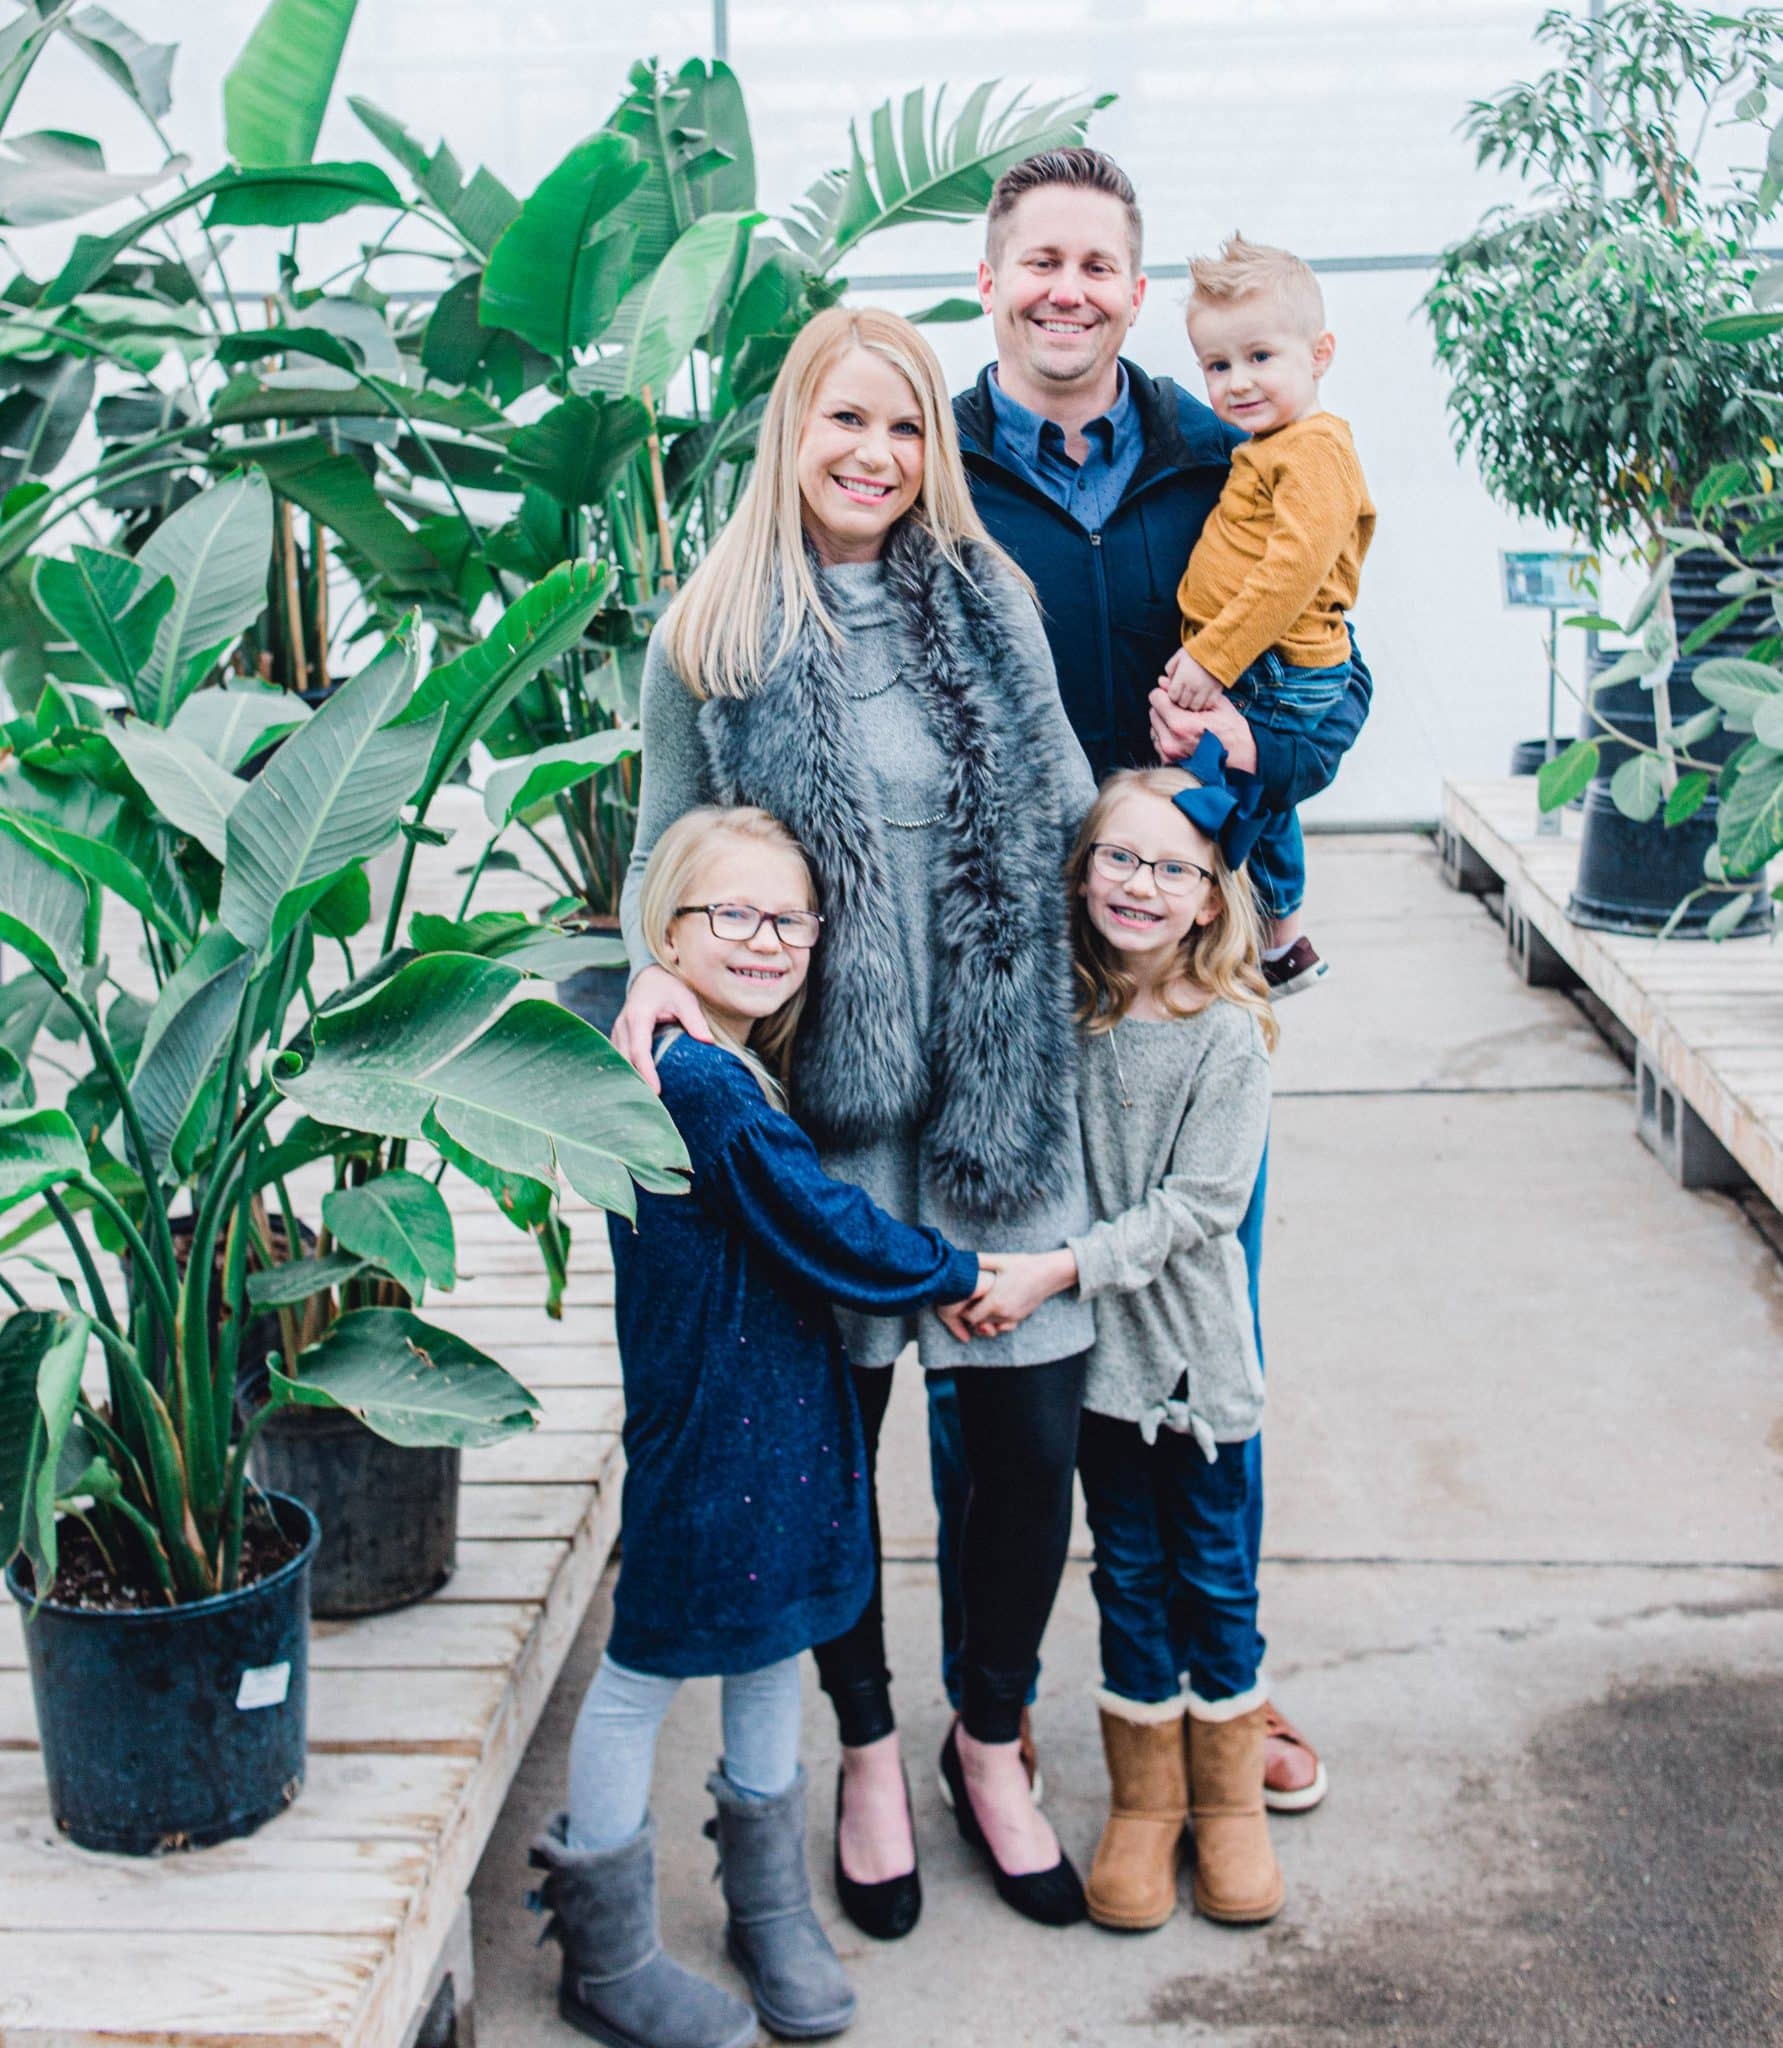 family of 5 looking at camera, in greenhouse